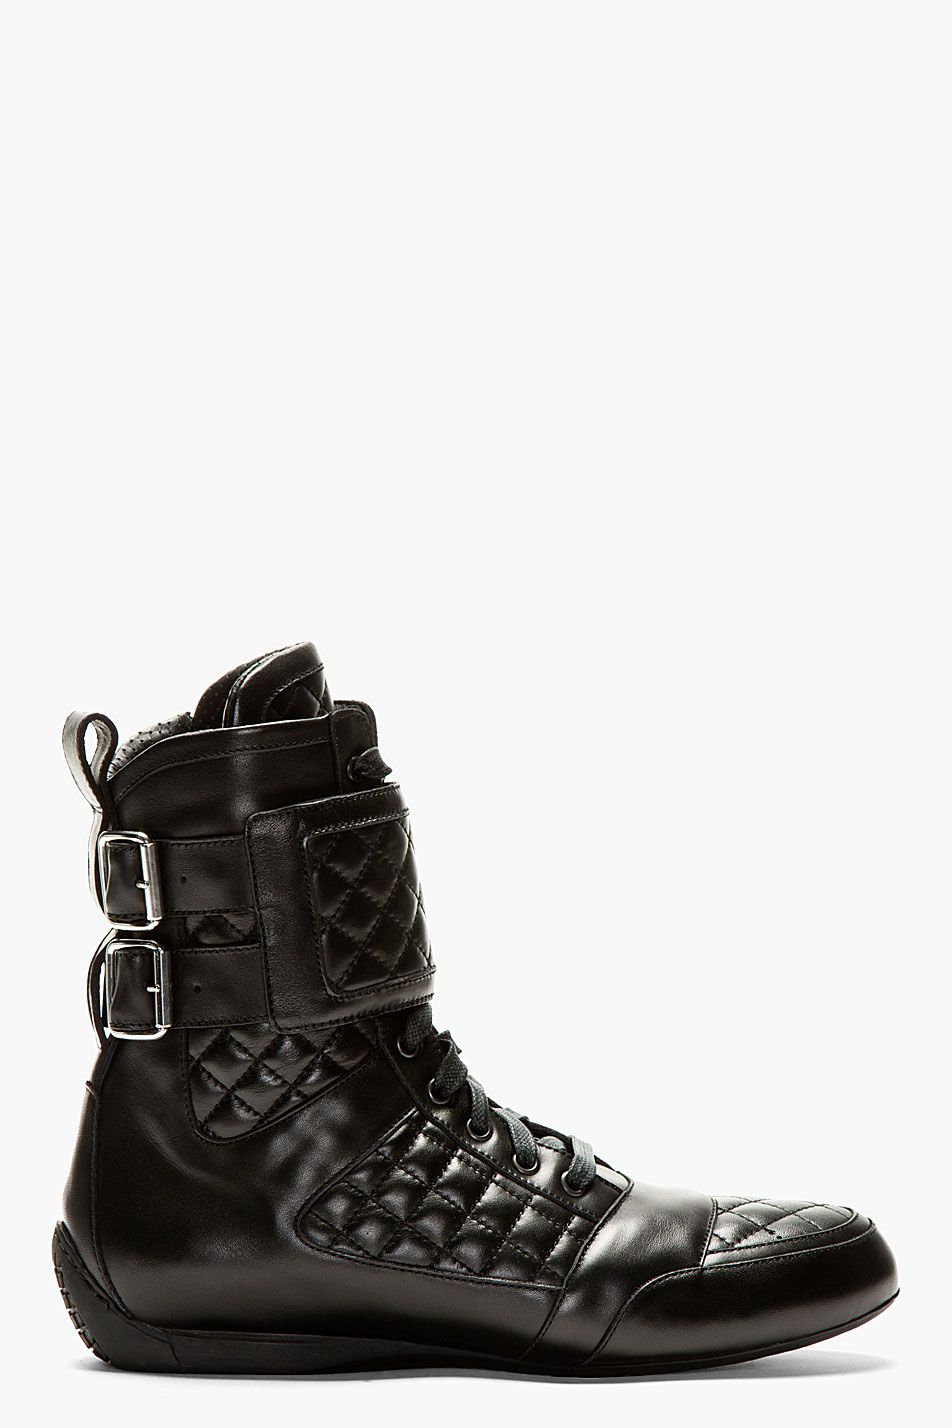 Balmain Black Quilted Leather High Top Sneakers Smart Casual